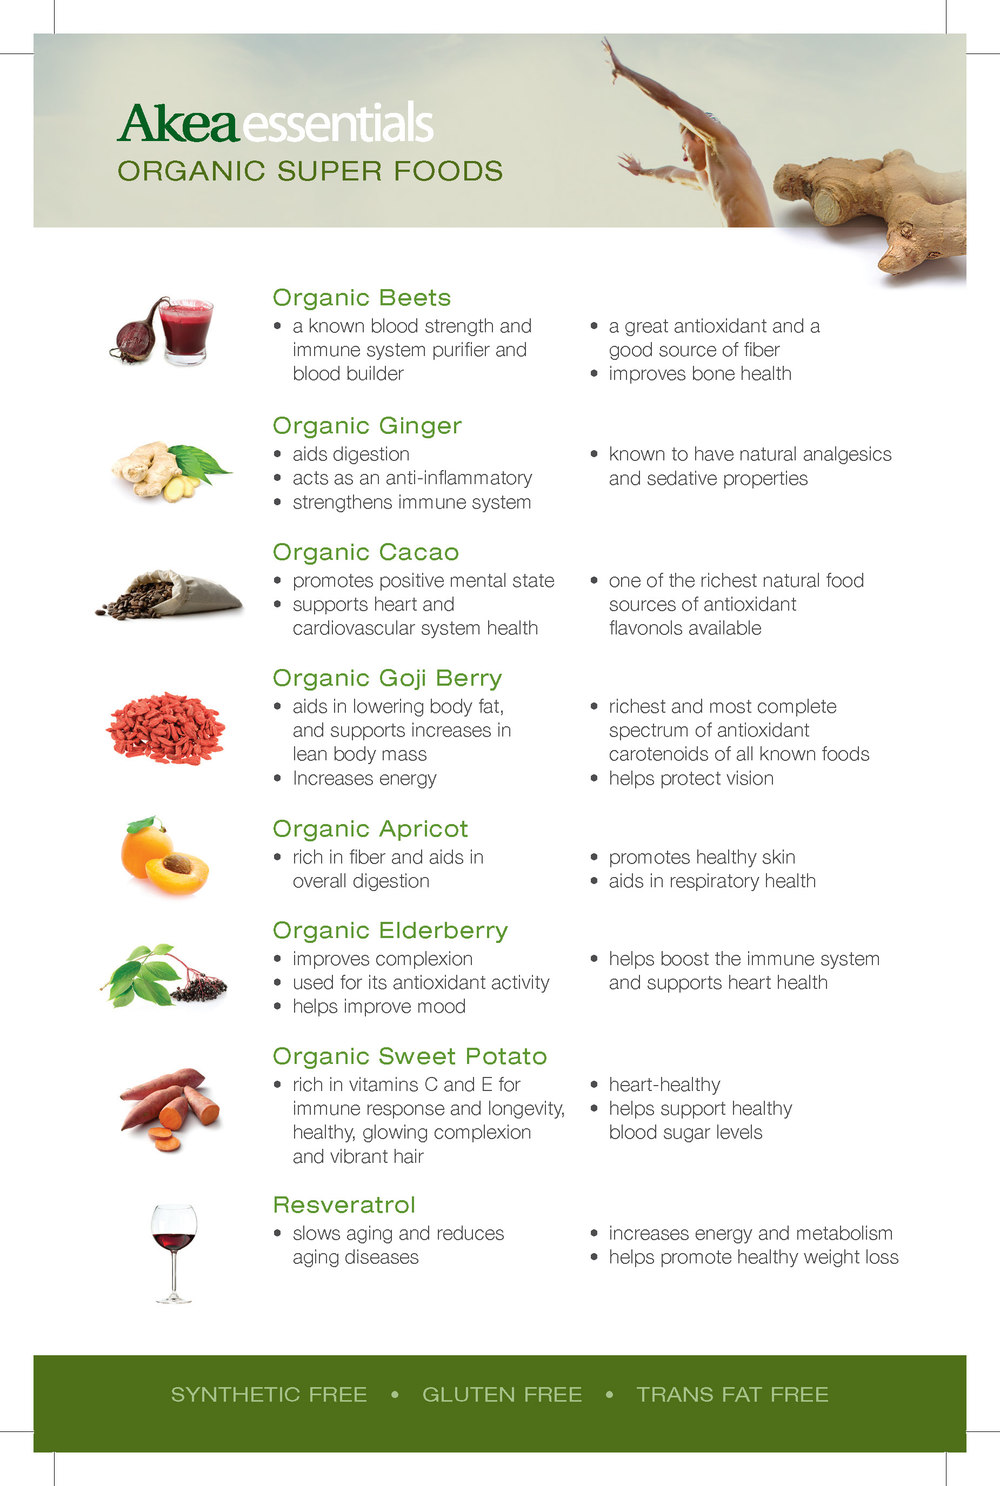 IngredientsBrochure_300px-in_Page_2.jpg